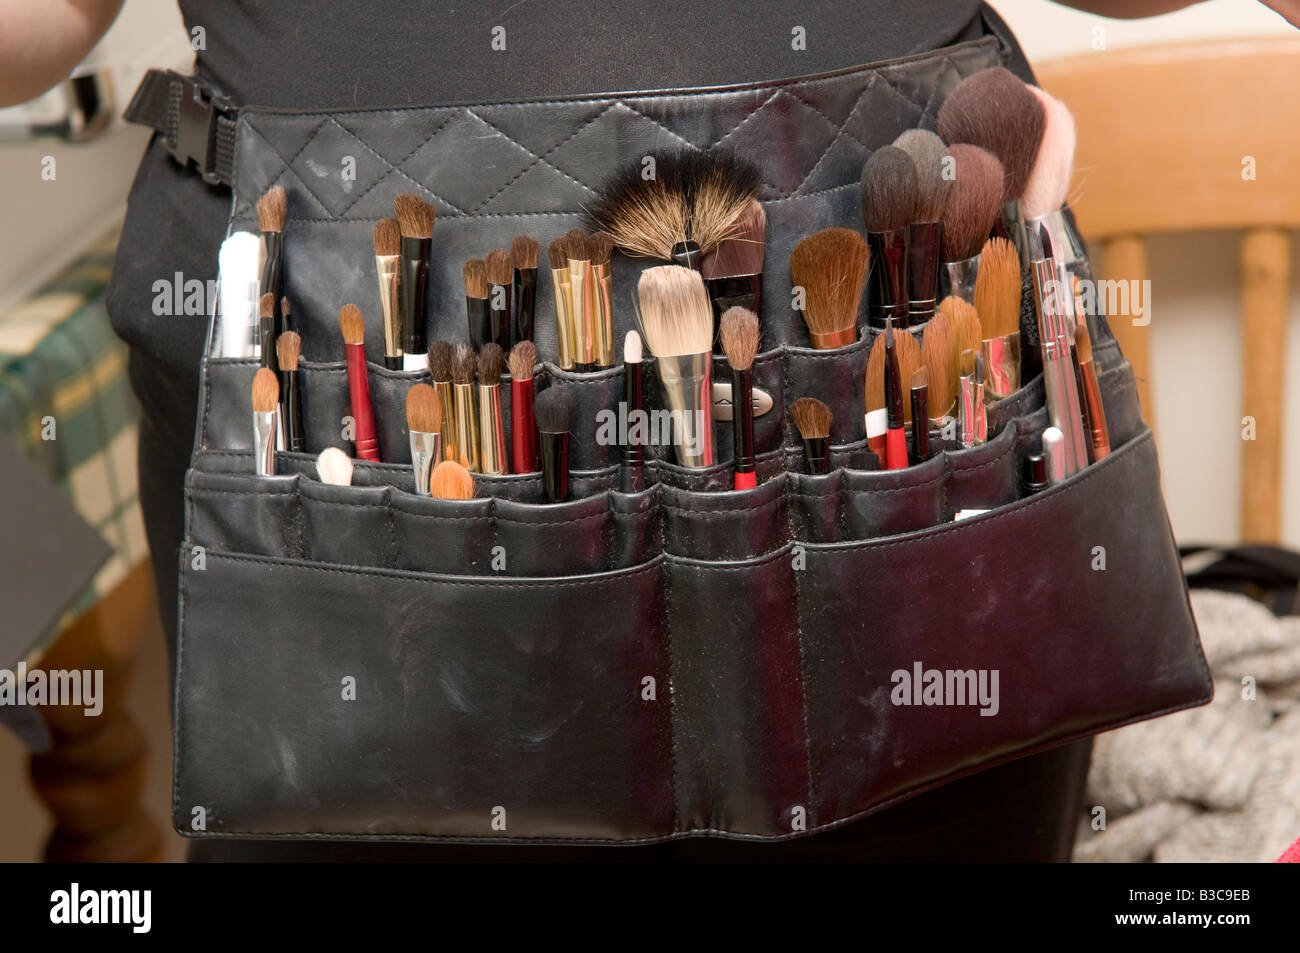 Make up woman's persons beautician pouch bag with her array of brushes used for applying makeup to a woman's - Stock Image